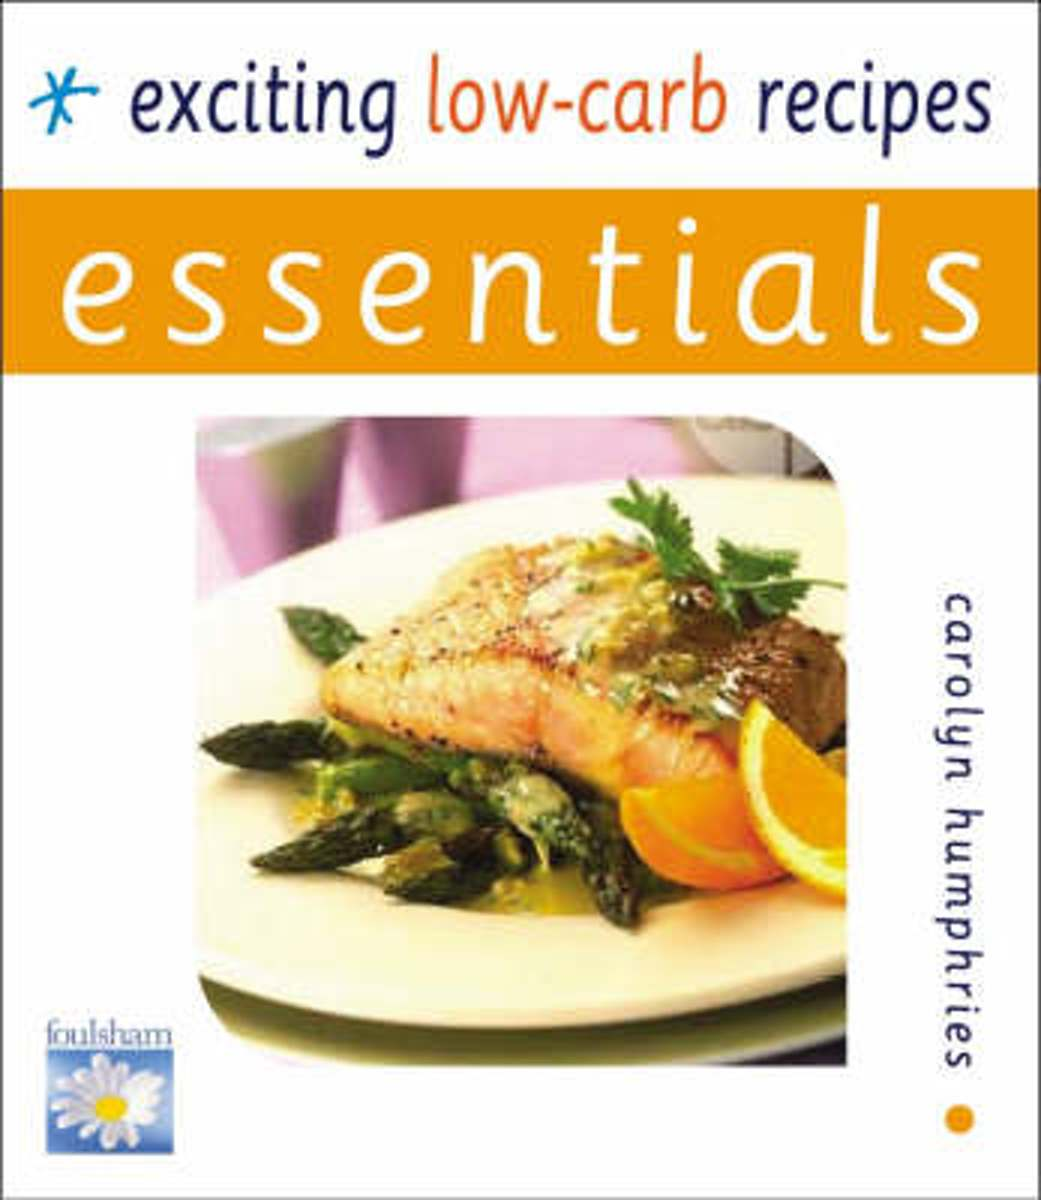 Exciting Low-carb Recipes